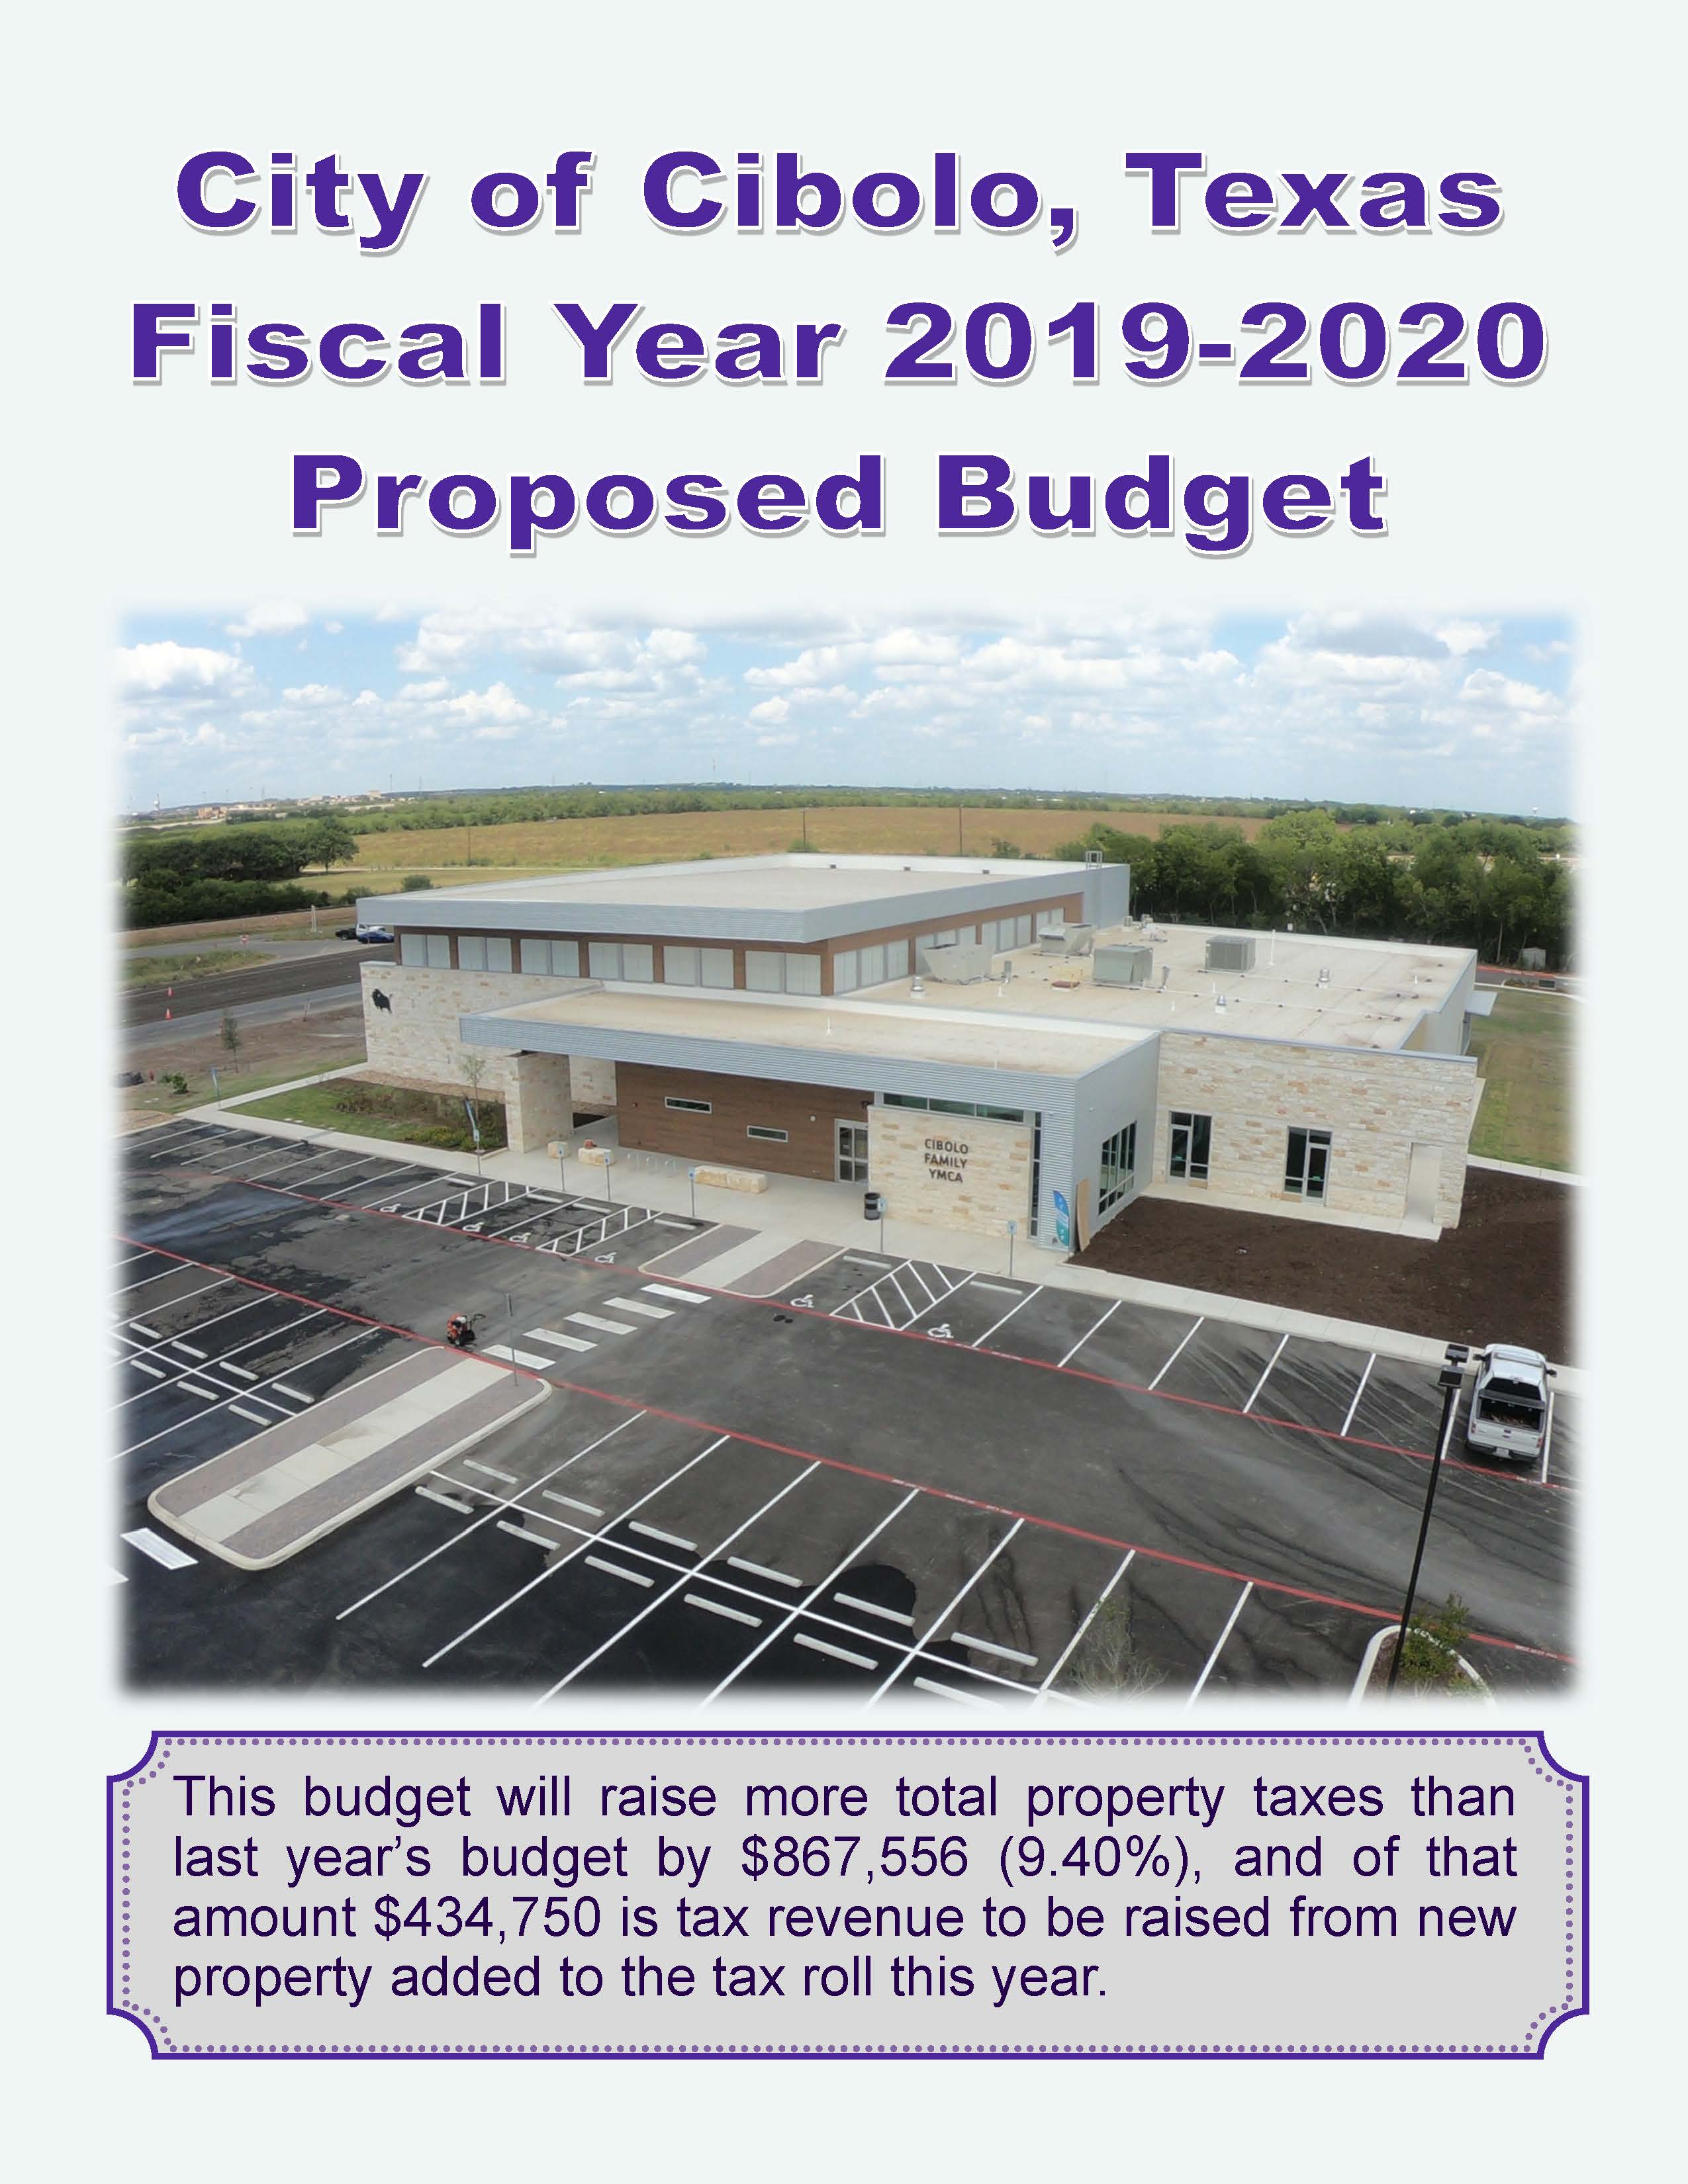 Proposed FY 2019-2020 Budget